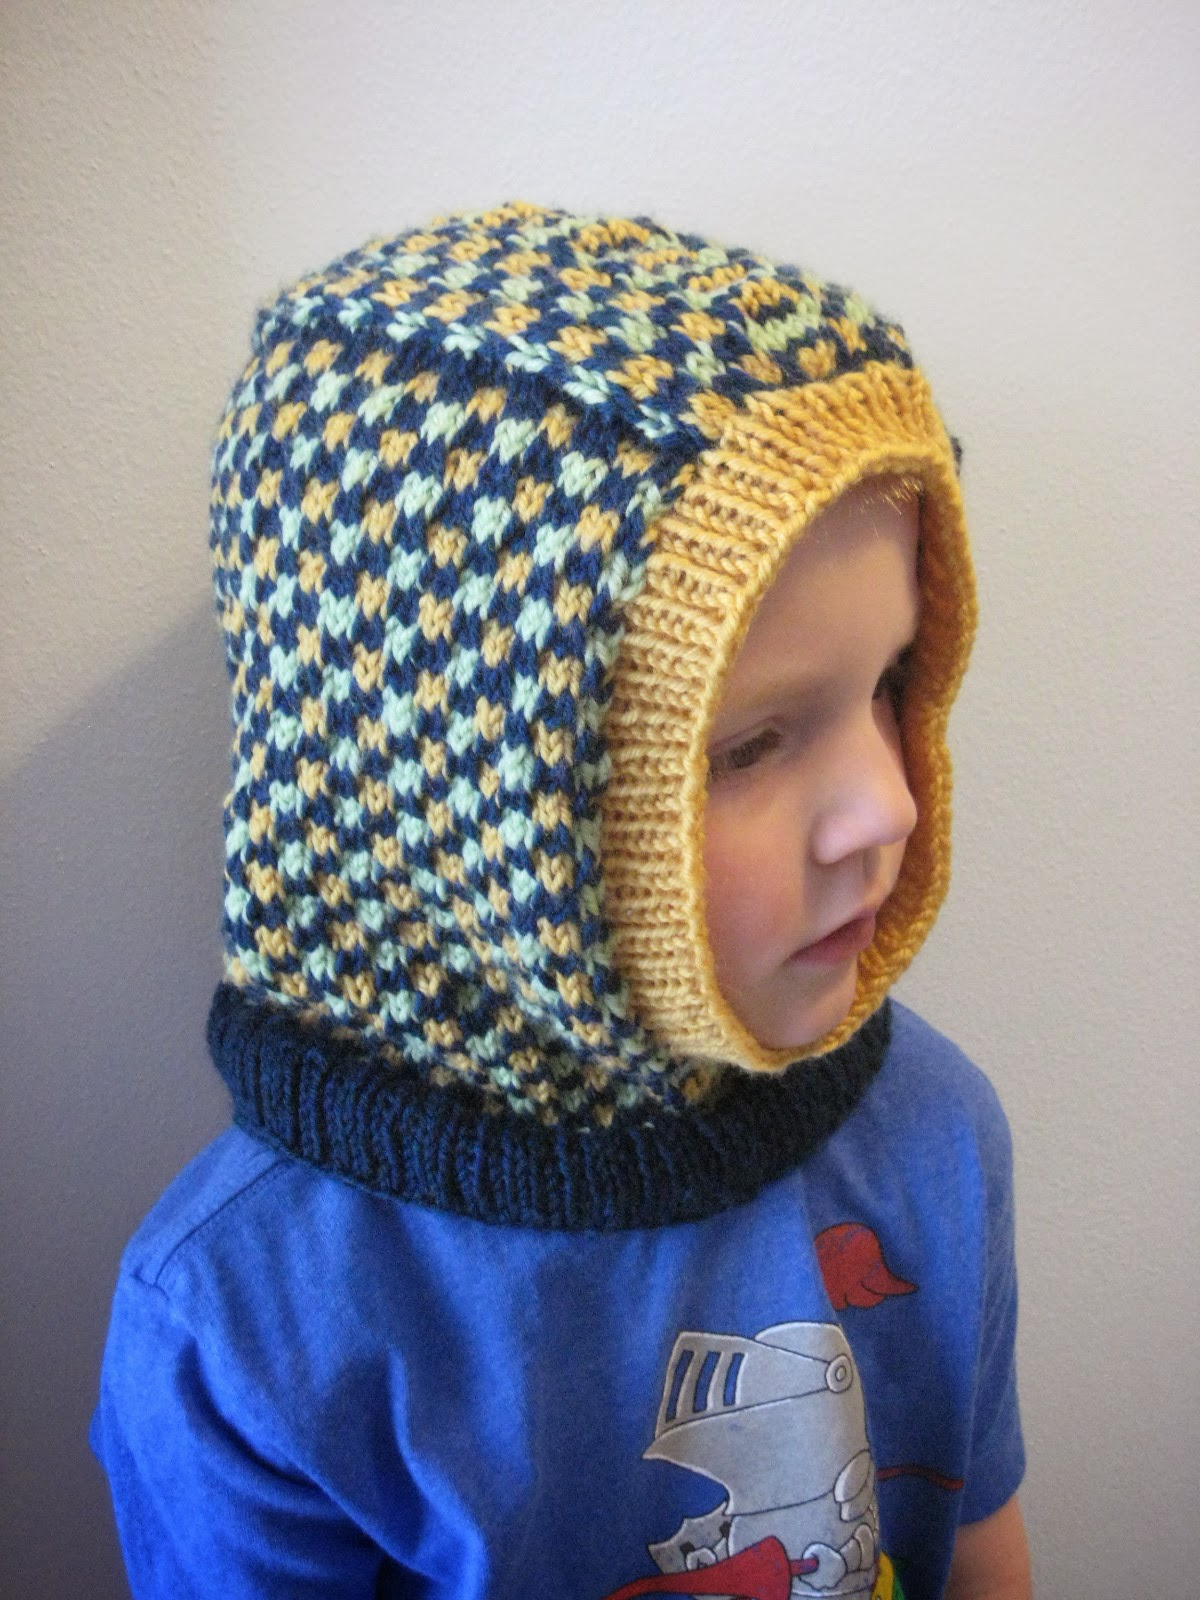 Knitting Pattern Balaclava Balls To The Walls Knits Kids Dice Check Balaclava